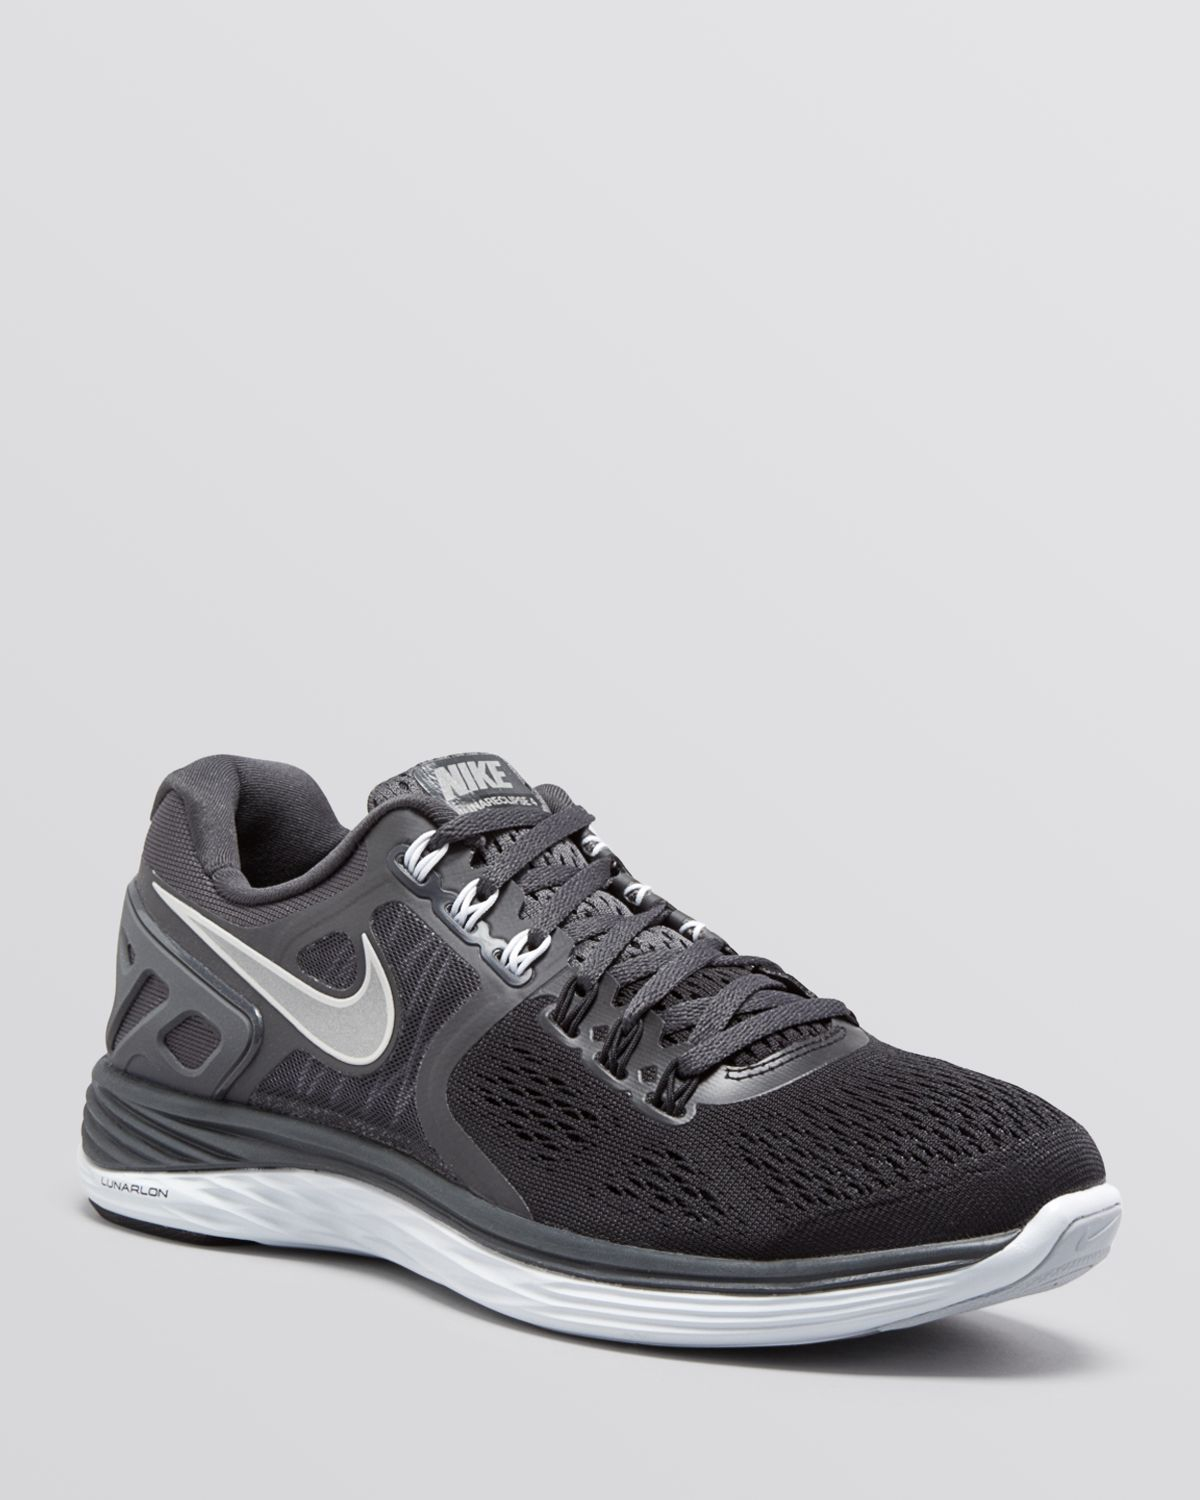 8f765d3aa77 Lyst - Nike Lunareclipse 4 Sneakers in Black for Men